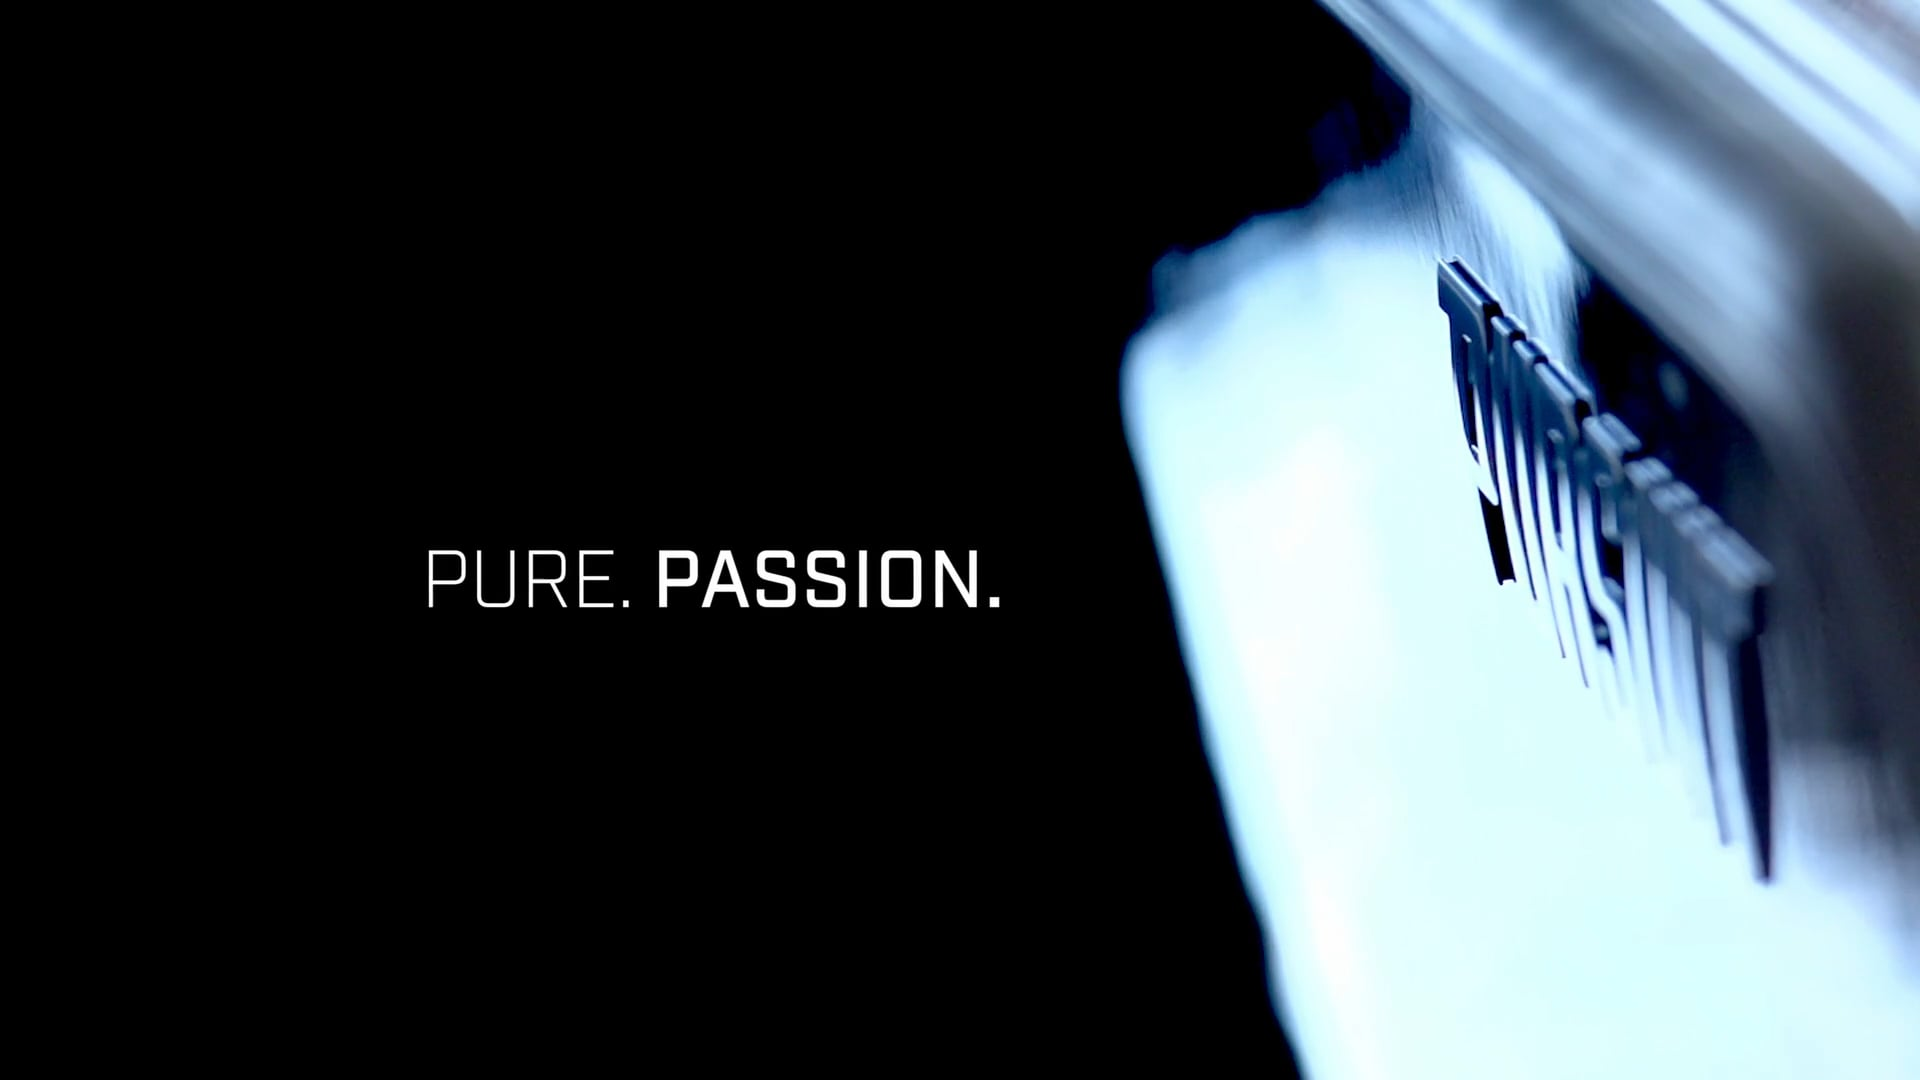 Dramatic image of Pursuit logo on the hull.